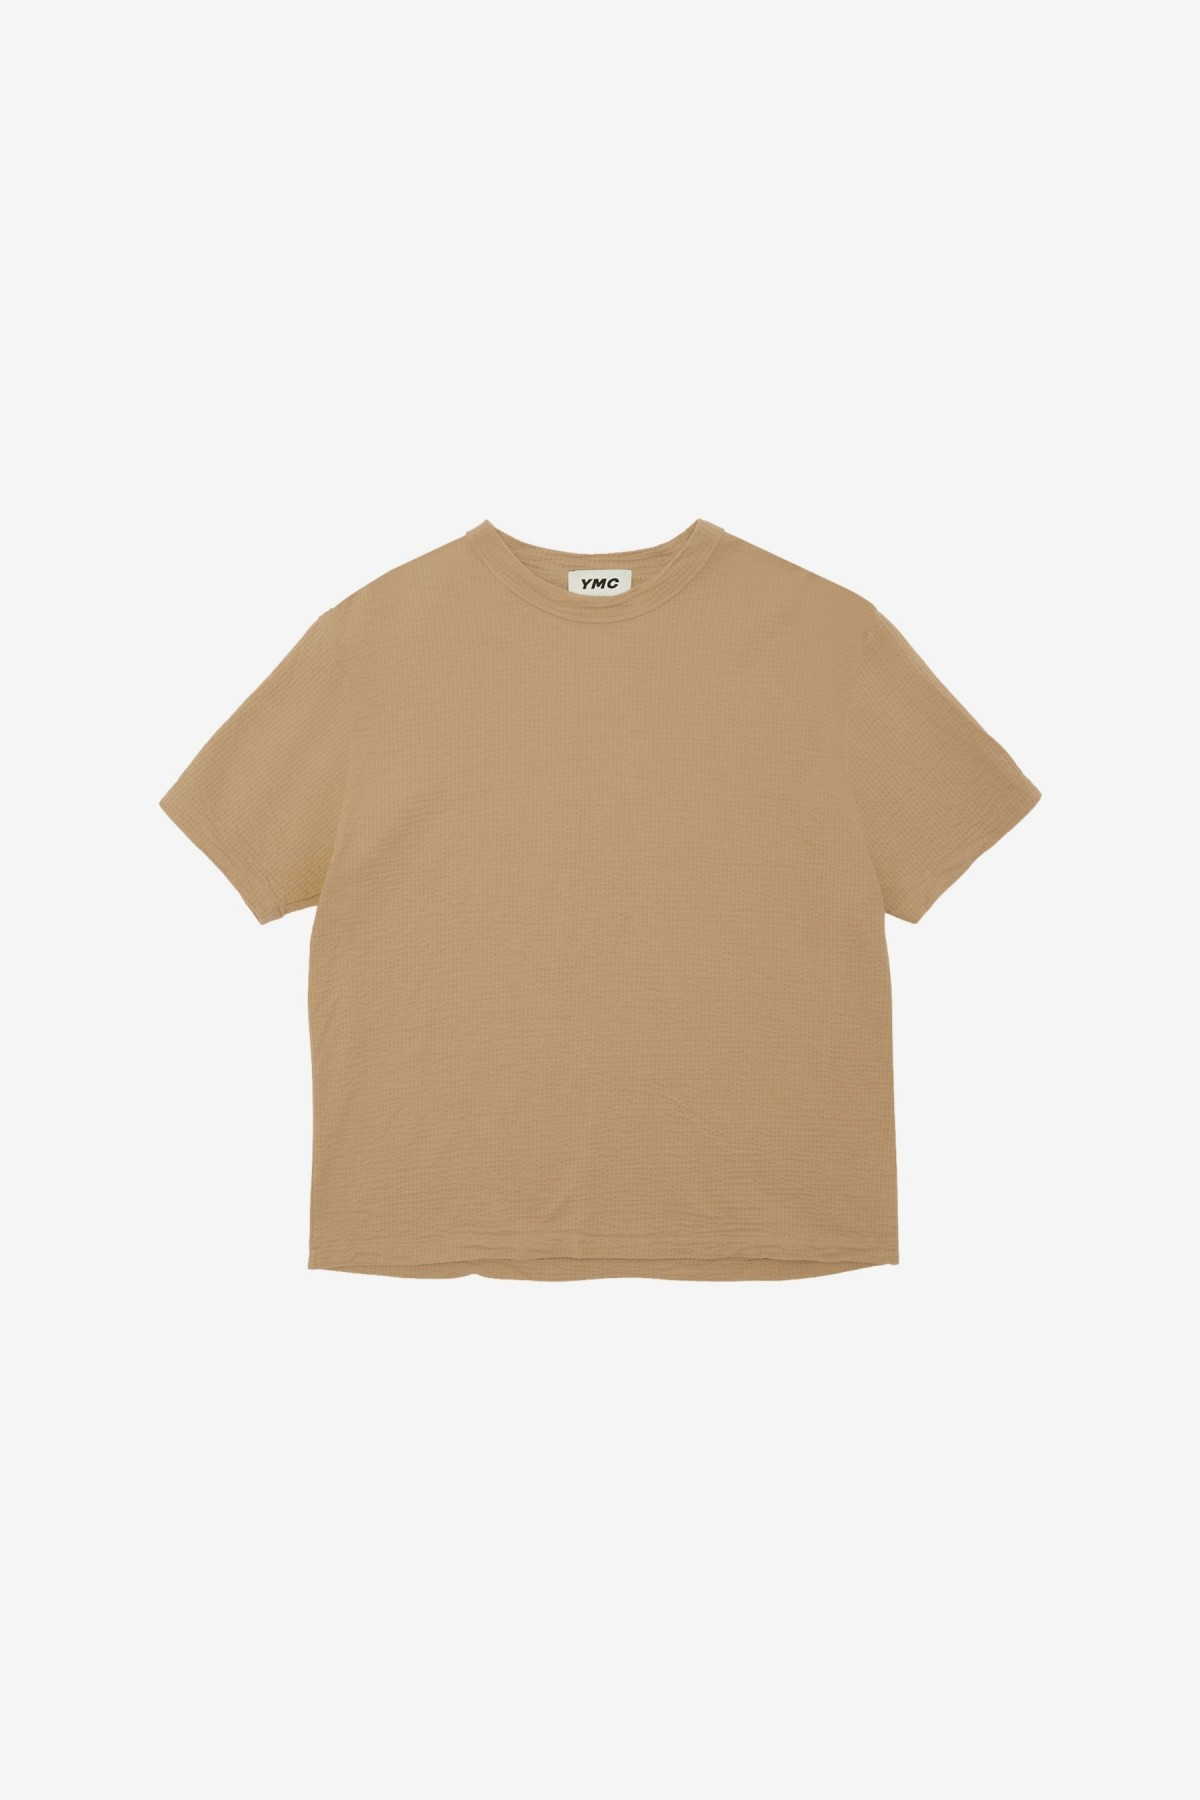 YMC You Must Create Triple S/S T Shirt in Camel